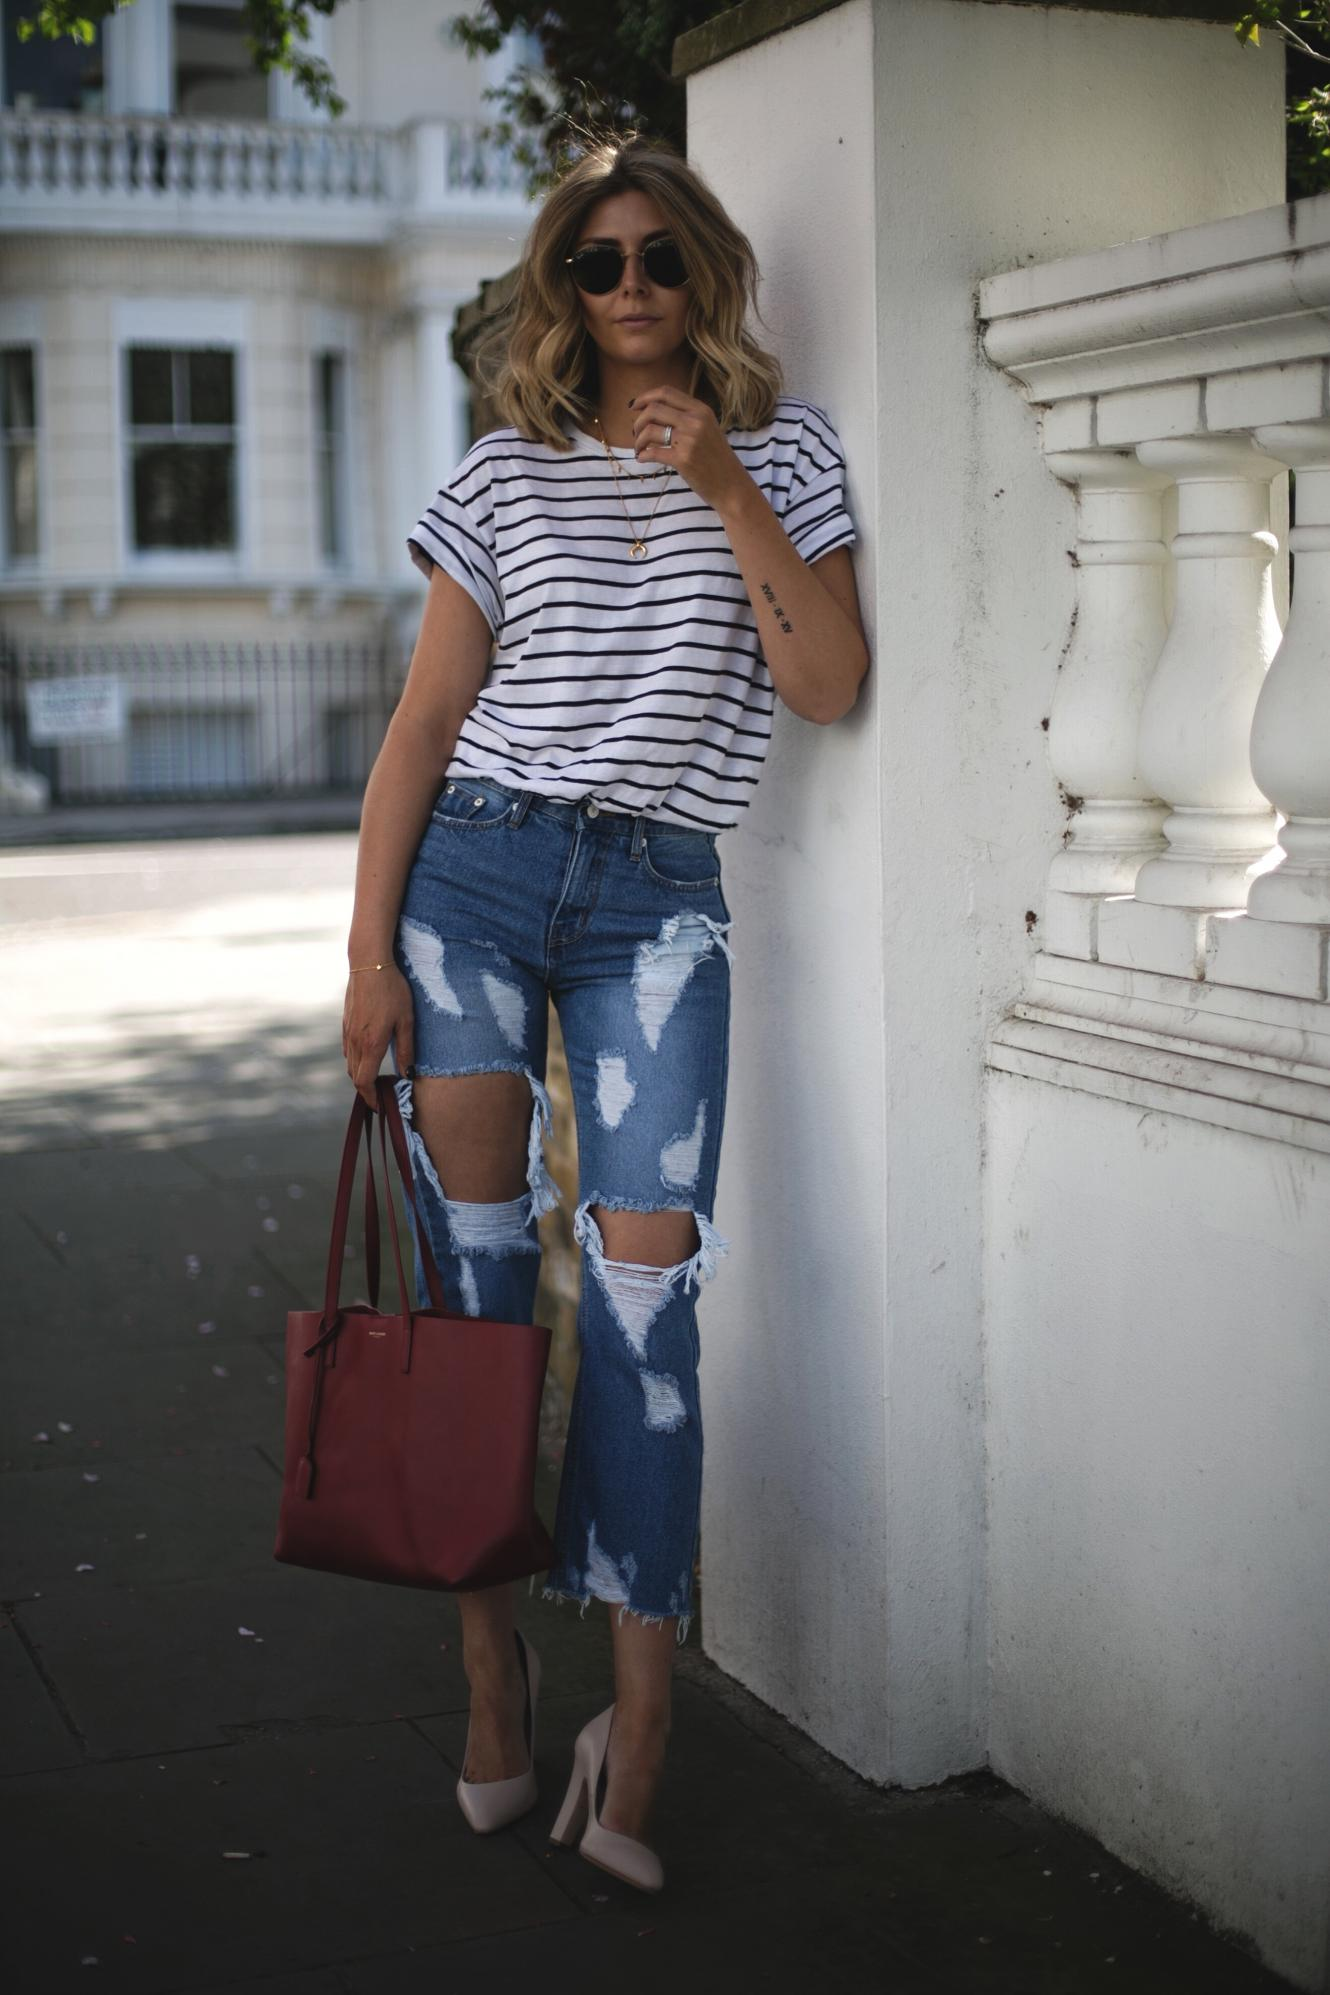 Emma Hill of EJSTYLE wears stripe t-shirt, ripped destroyed jeans, red Saint Laurent YSL shopper tote bag, nude heels, gold layered necklaces, Spring outfit